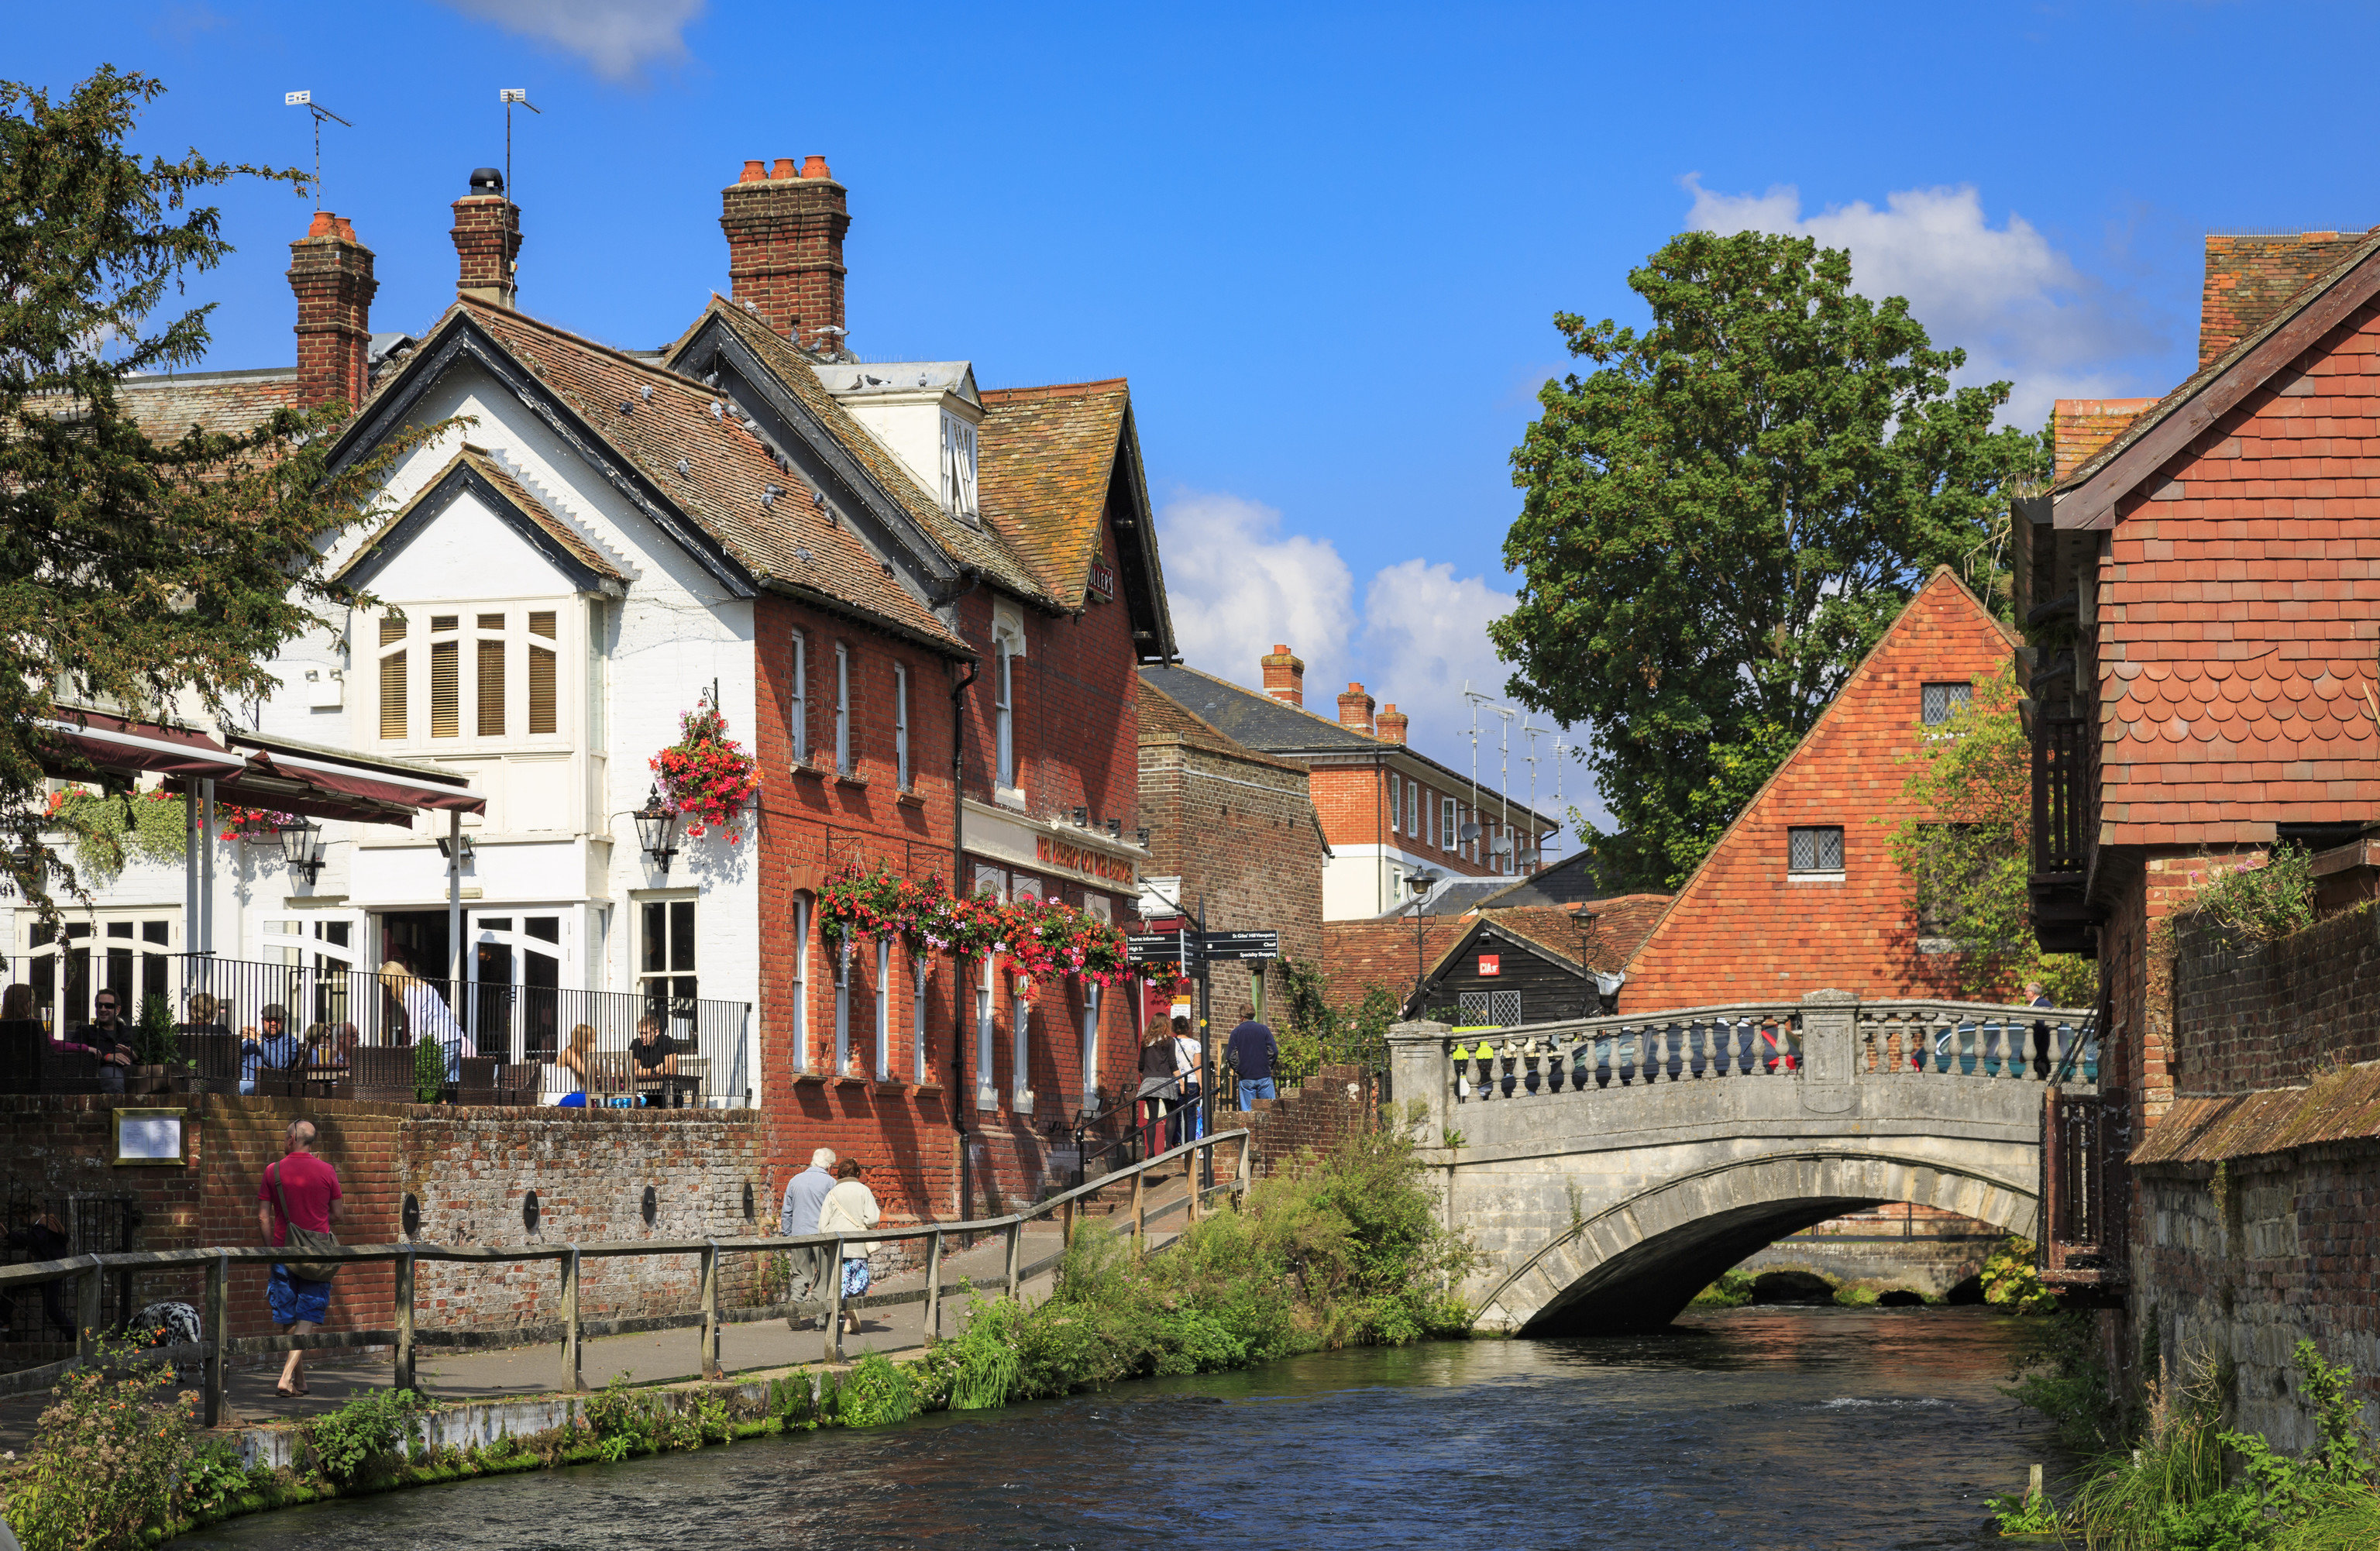 Austria England europe France Germany Italy Outdoors + Adventure Portugal Spain Trip Ideas waterway Town Canal water house tree reflection Village City sky cottage River plant watercourse water castle estate facade building